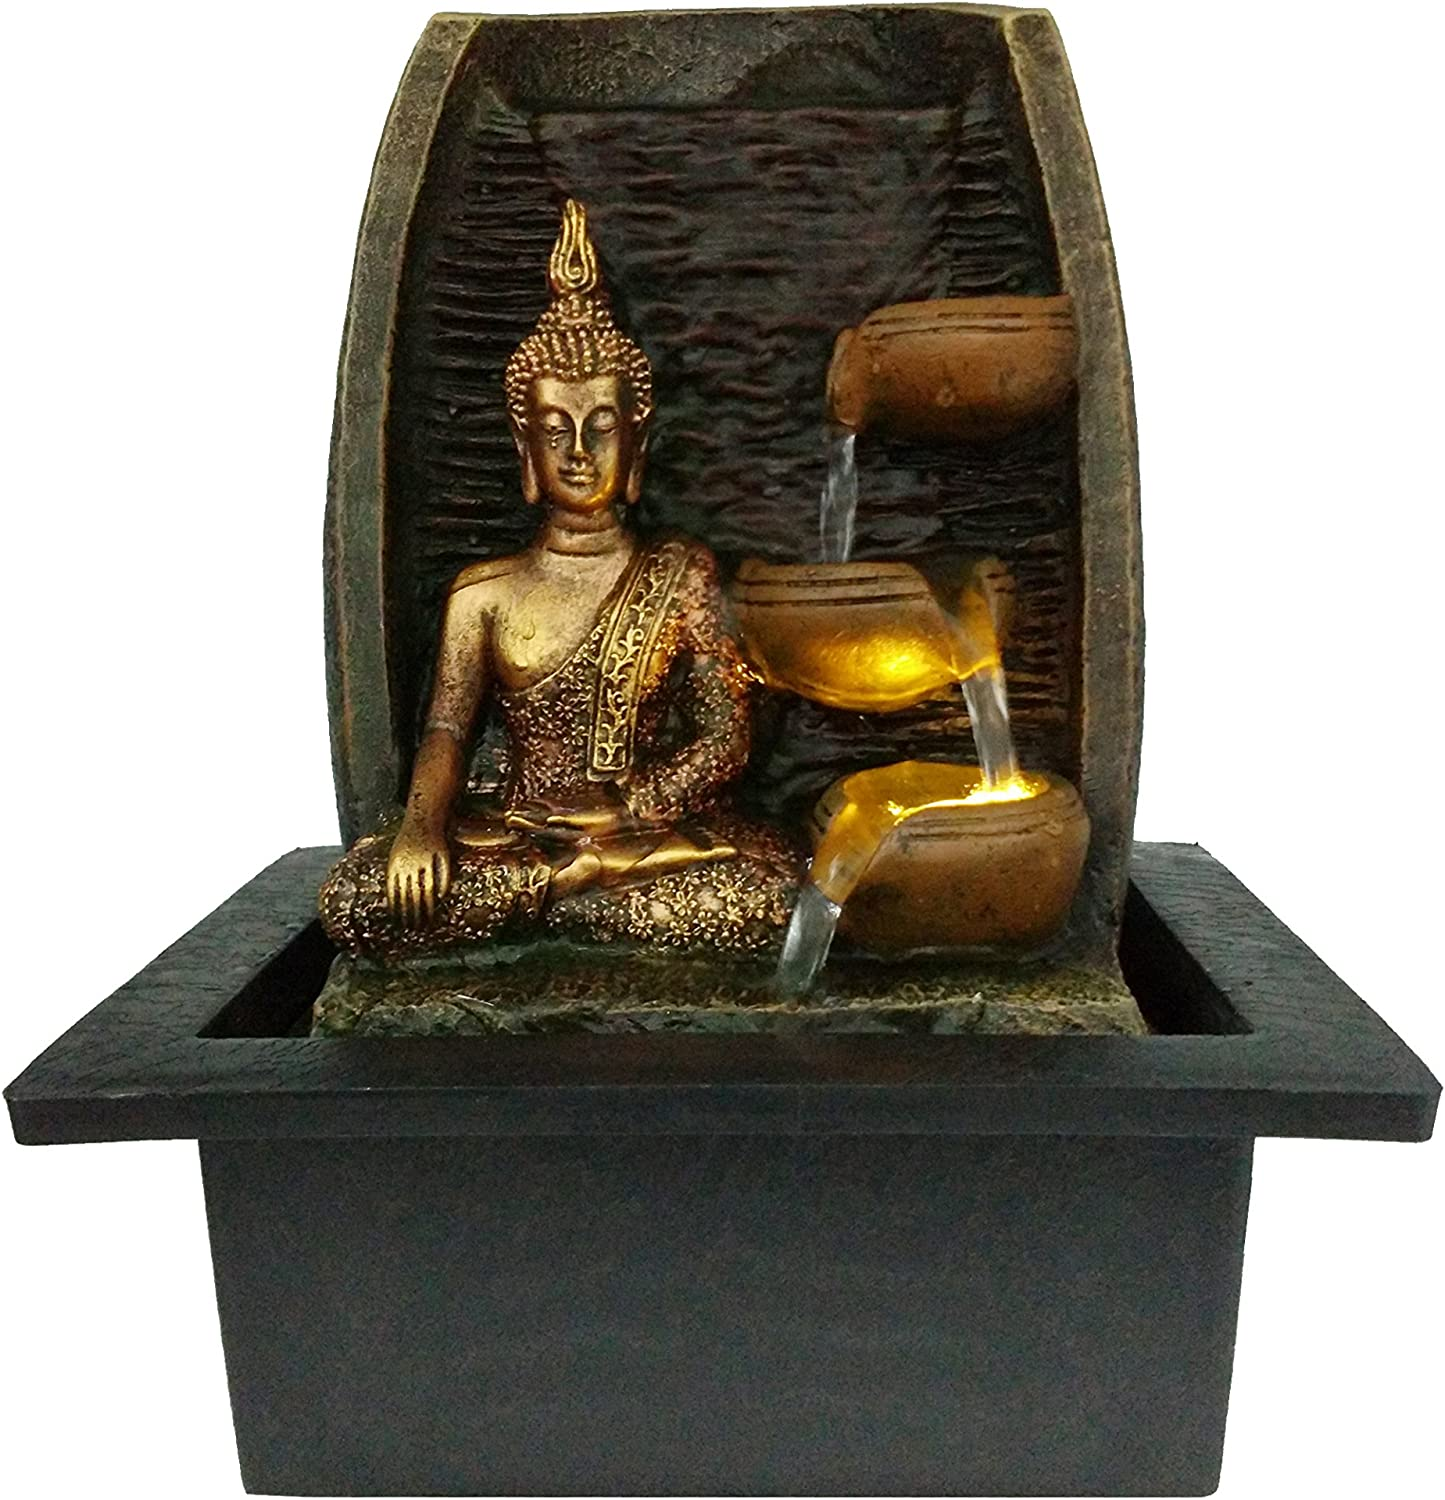 Bibiana Golden Buddha With Water Cups And Led Light Indoor Water Fountain 21cm X 18cm X 25cm Amazon Co Uk Kitchen Home